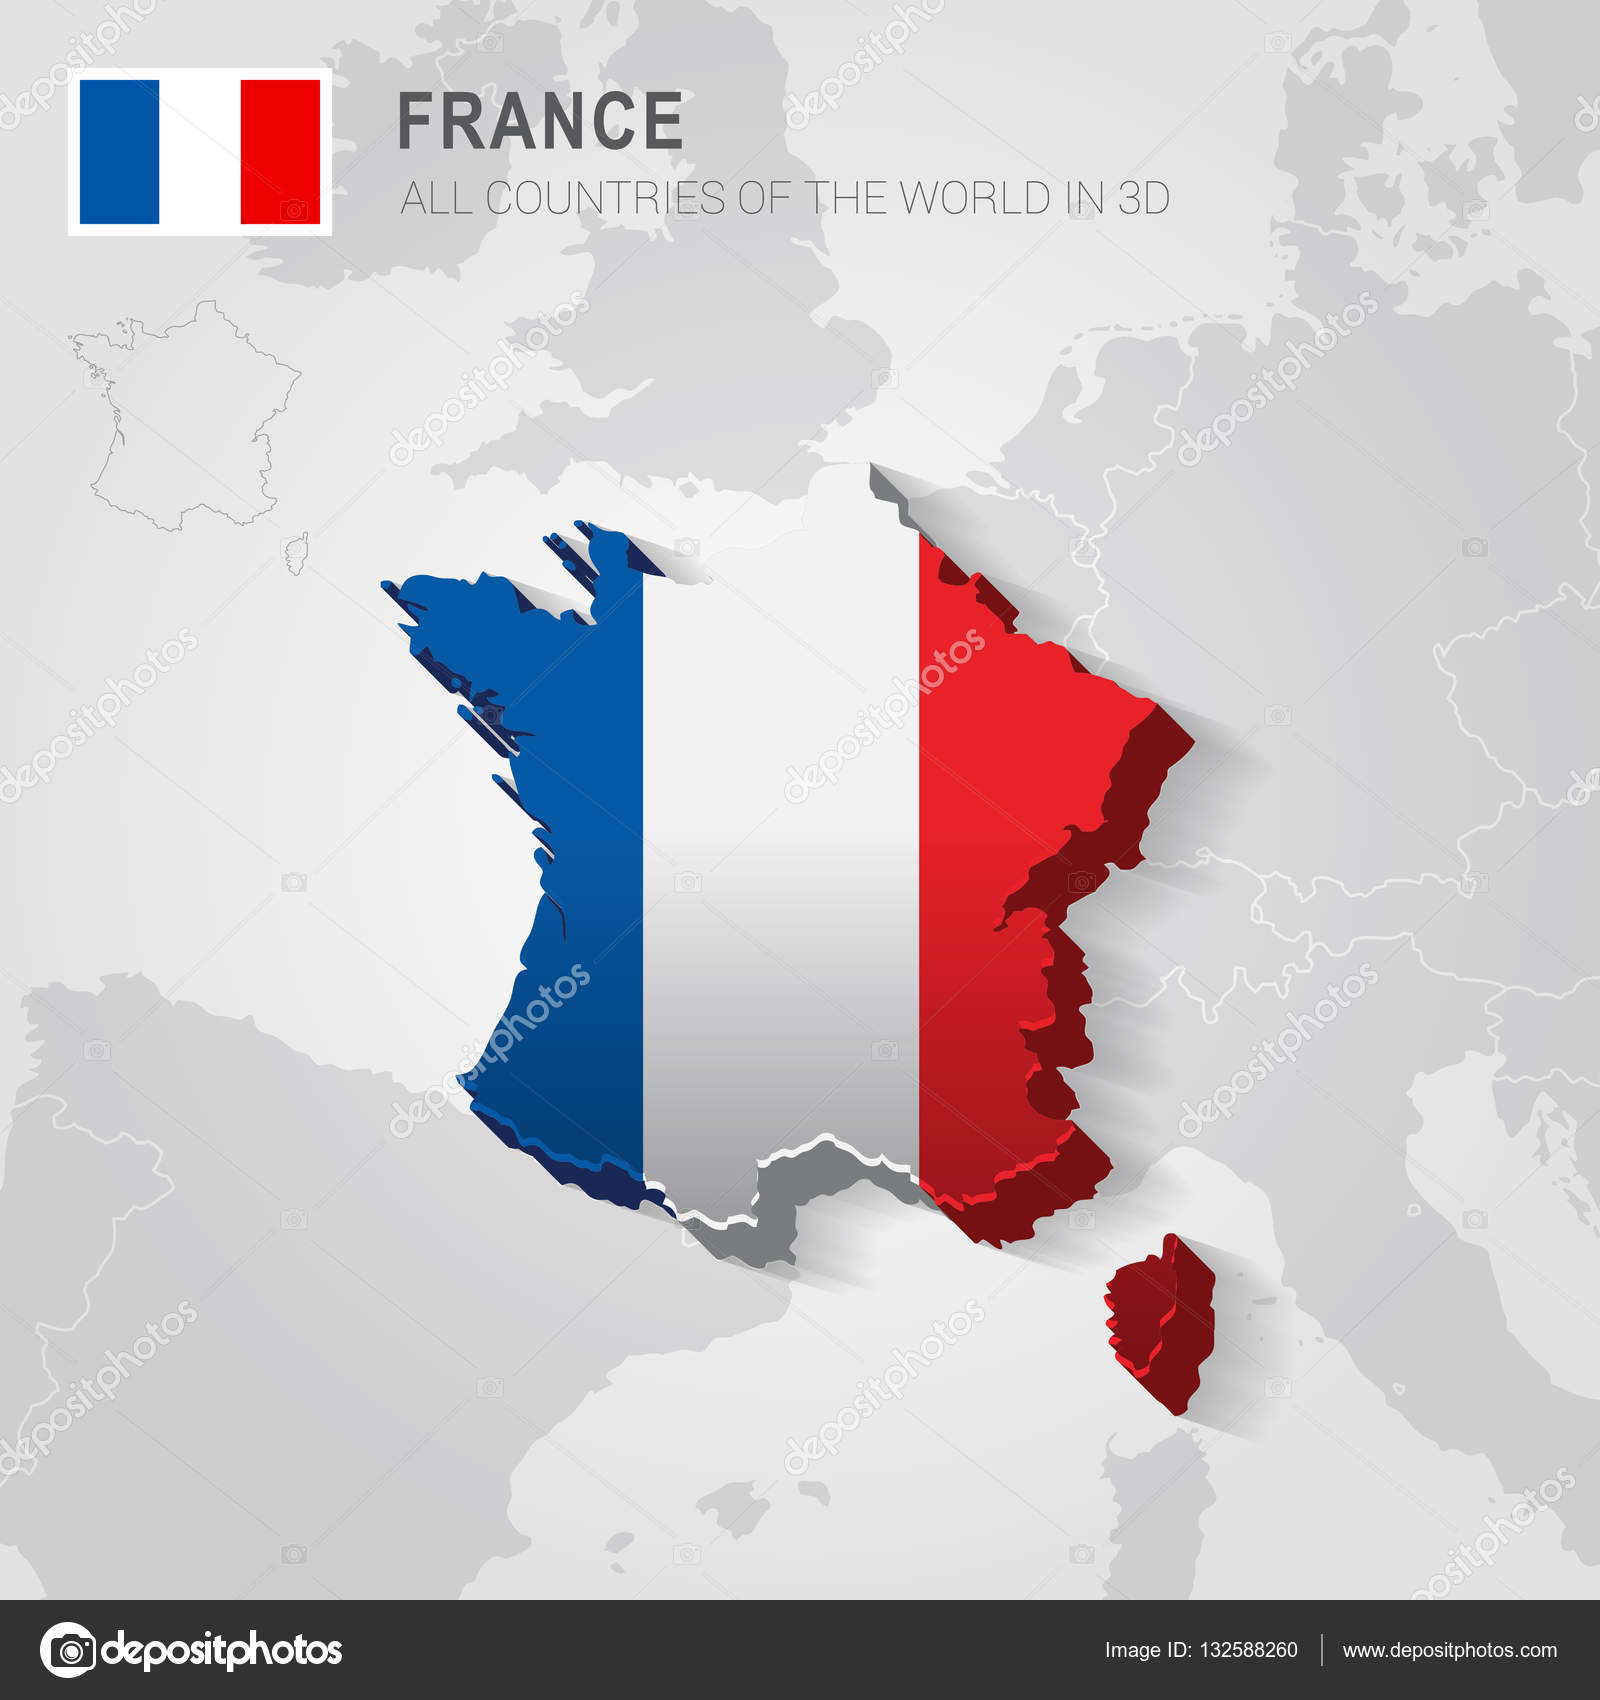 Map Of France With Neighbouring Countries.France And Neighboring Countries Europe Administrative Map Stock